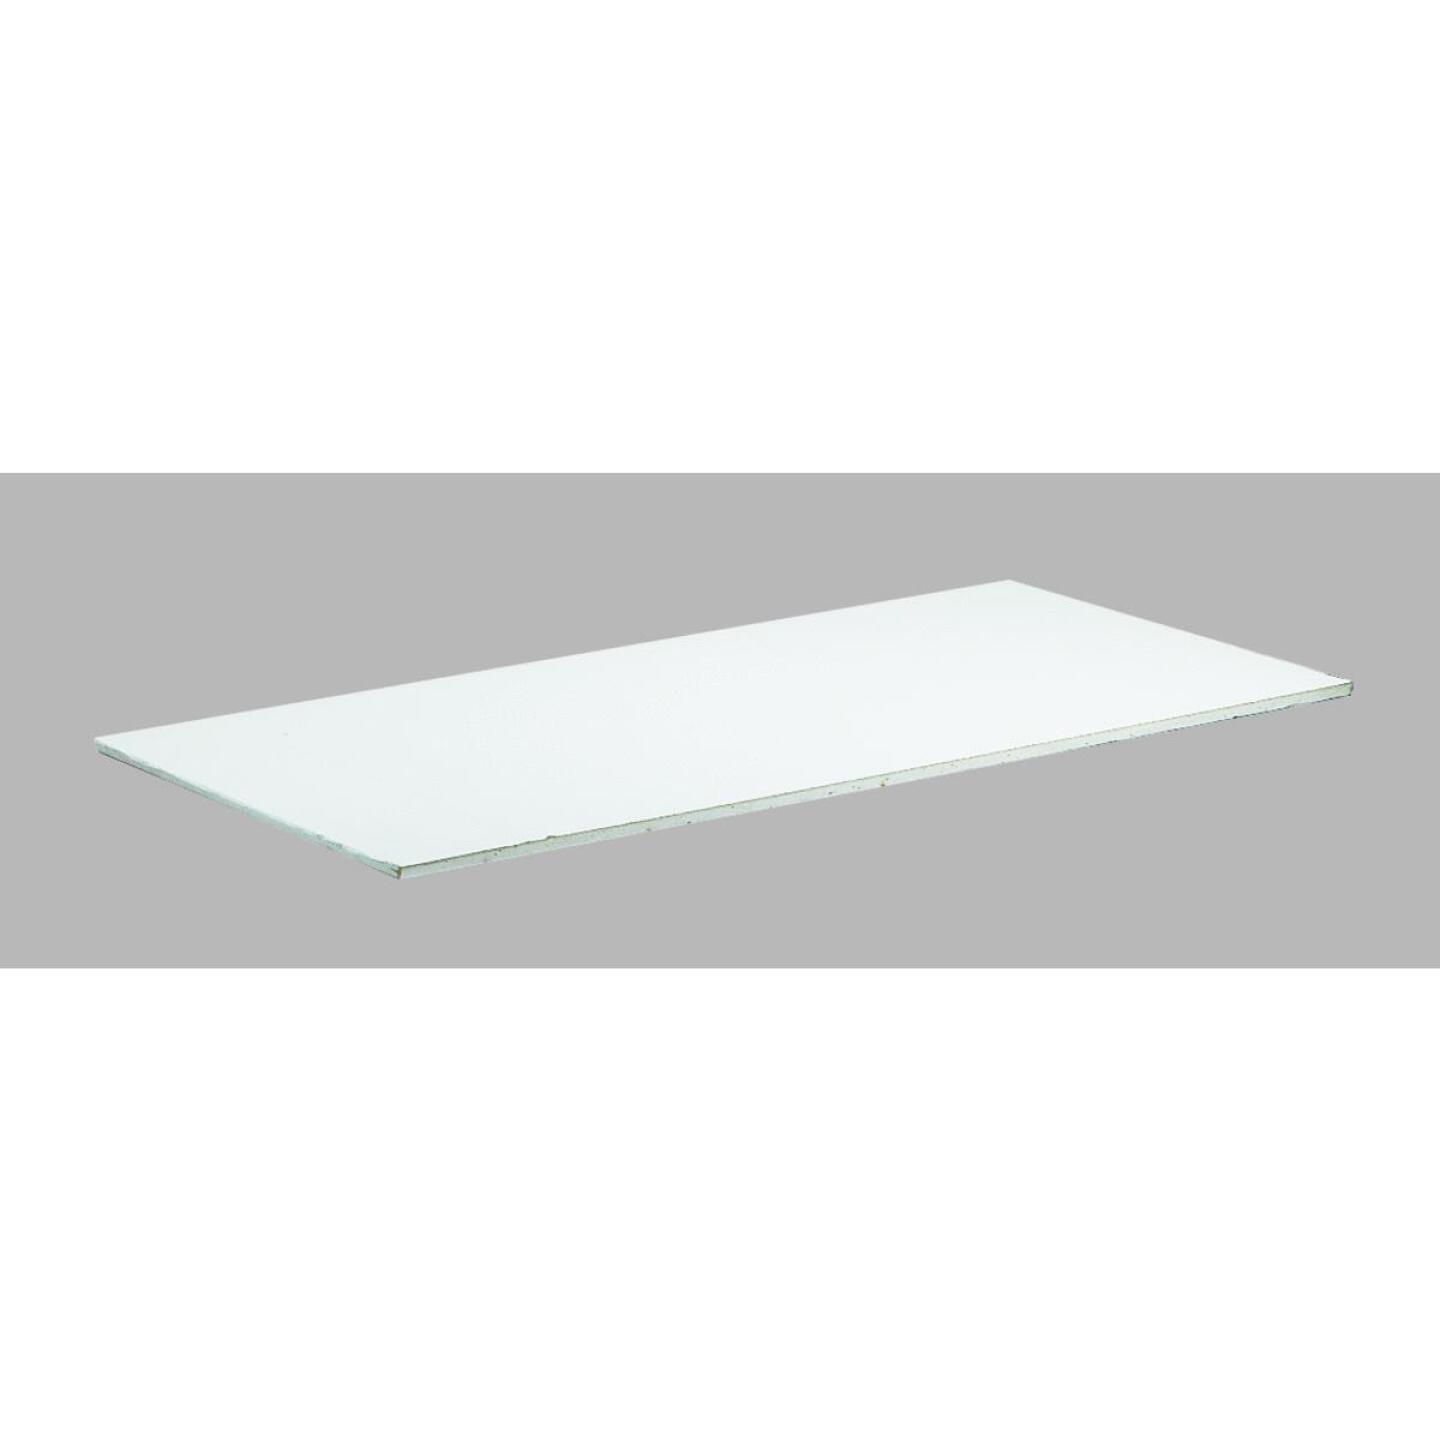 Sheetrock ClimaPlus 2 Ft. x 4 Ft. White Gypsum Fire Rated Lay-In Ceiling Tile (4-Count) Image 1